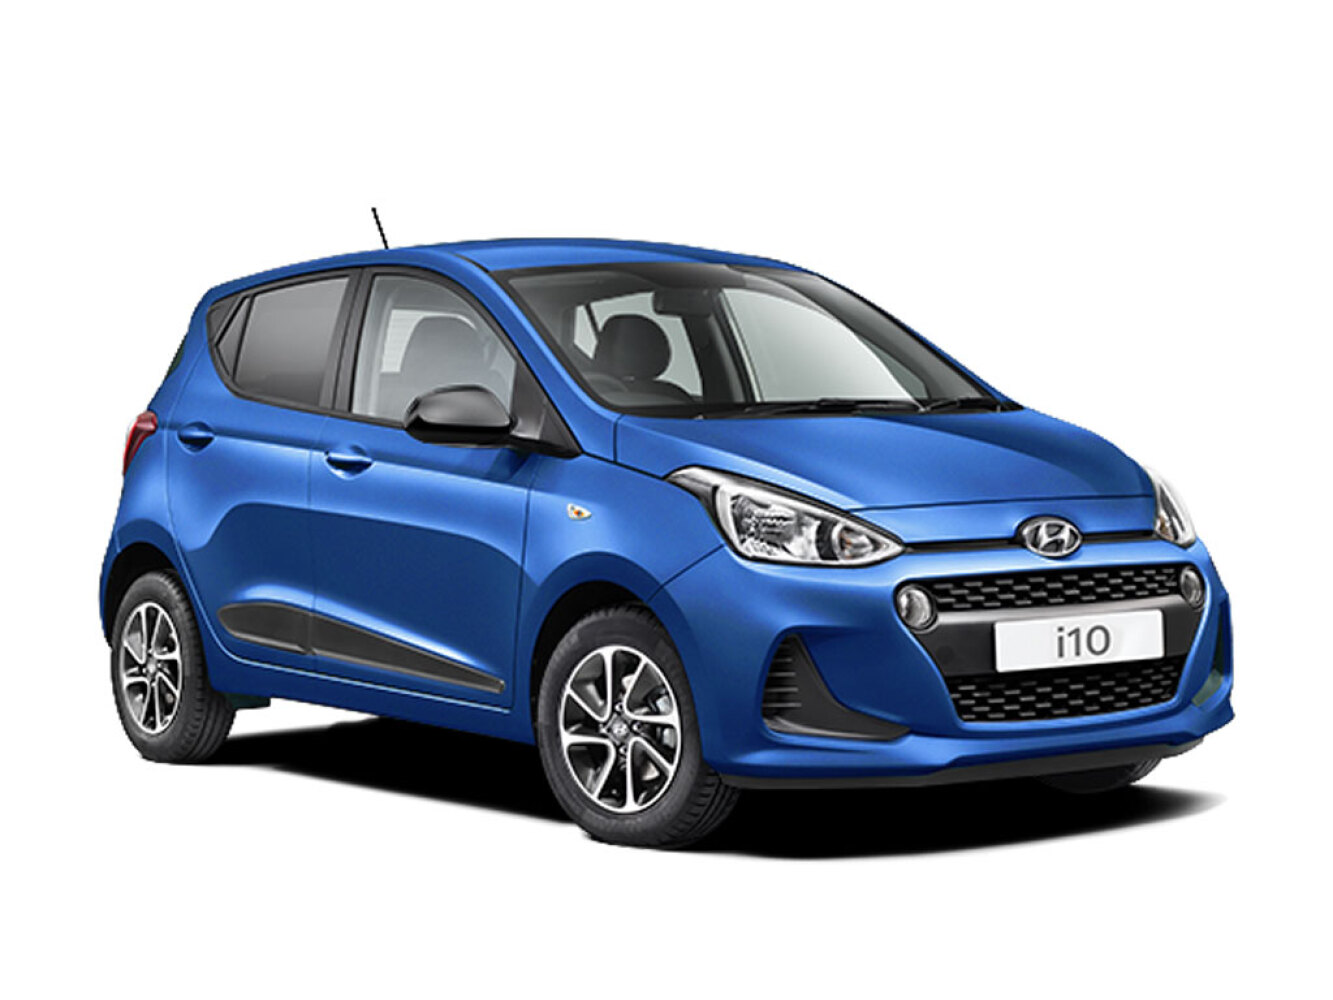 new hyundai i10 1 0 go se 5dr petrol hatchback for sale. Black Bedroom Furniture Sets. Home Design Ideas